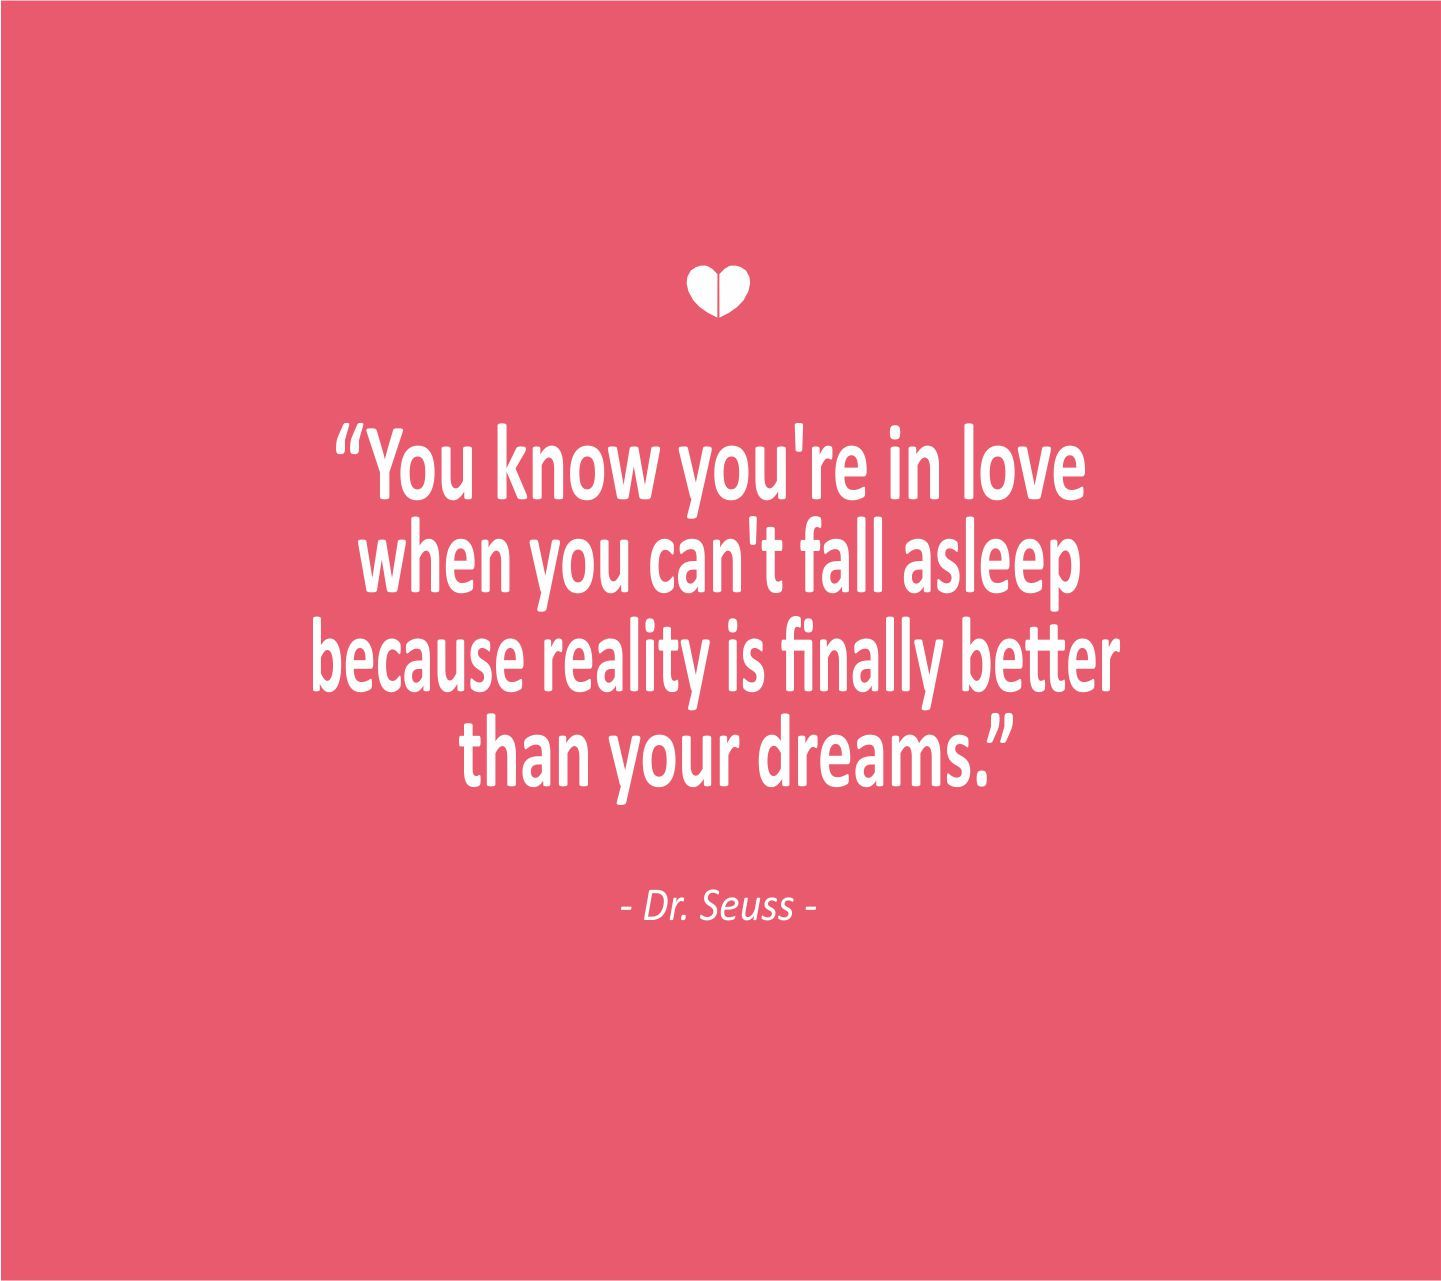 You Know You Re In Love When Quotes Inspiration Love Quotes You Know Youre In Love When You Cant Fall Asleep Because